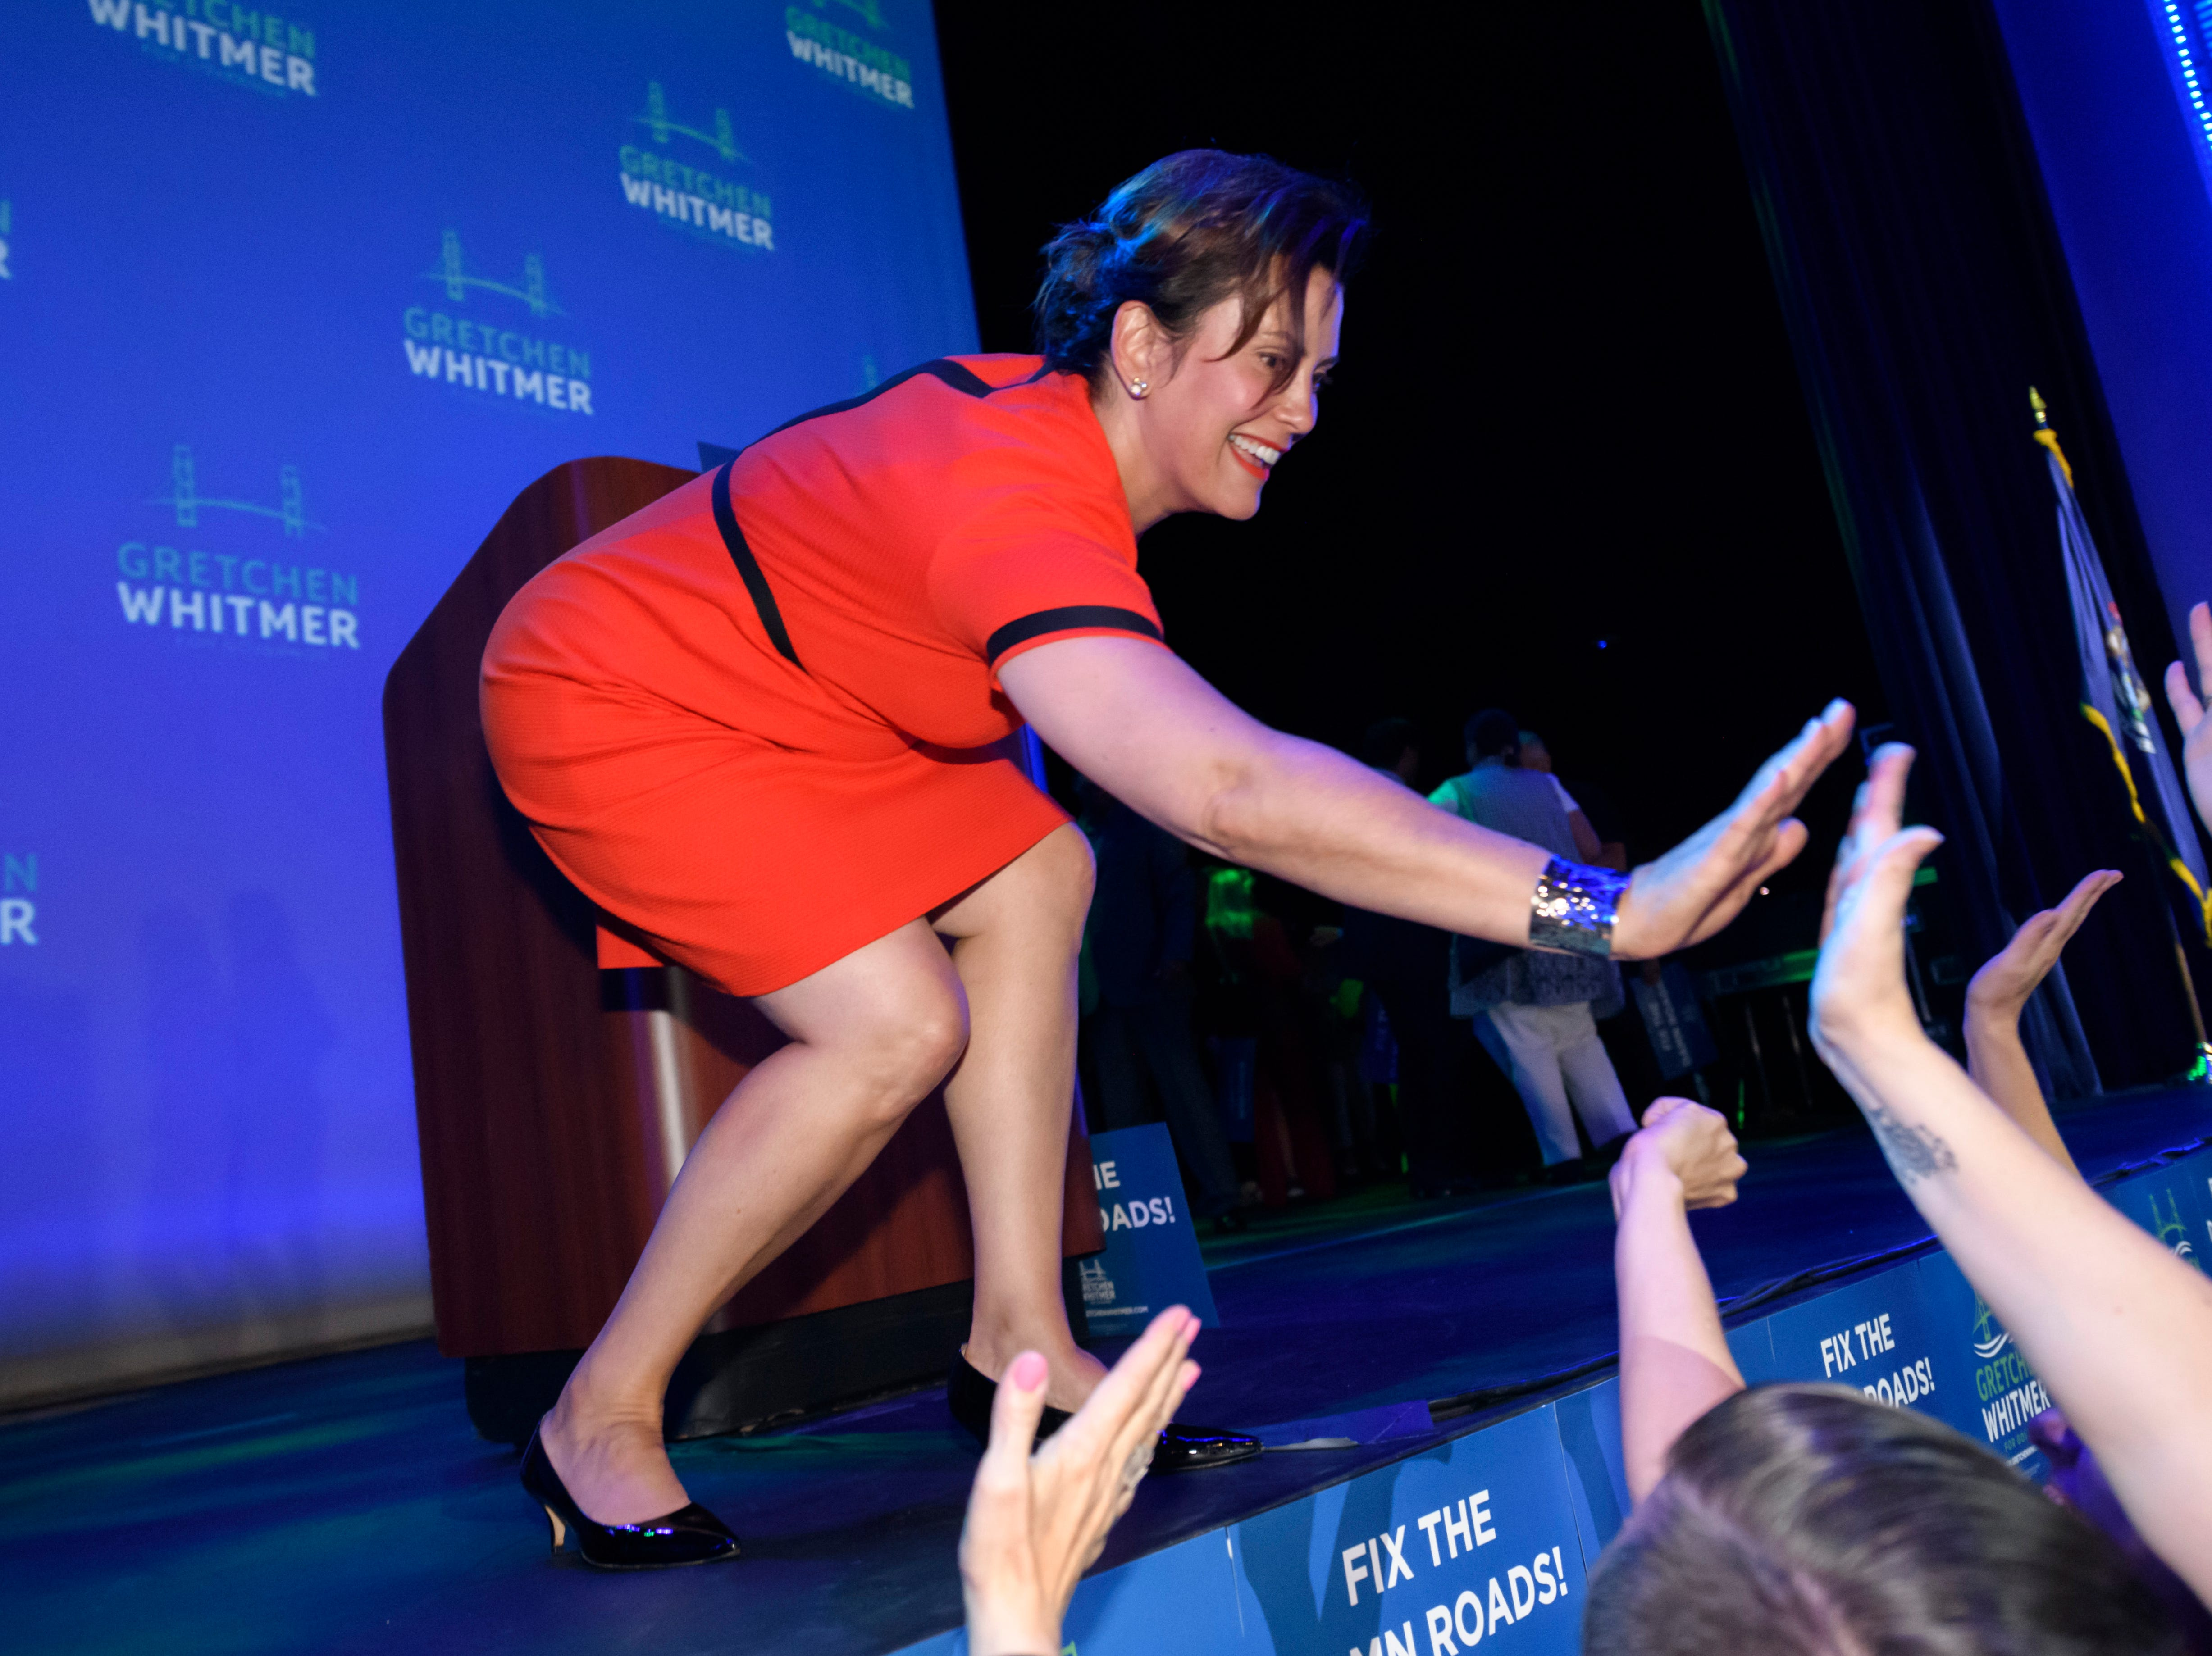 Michigan gubernatorial candidate Gretchen Wilmer high fives her supporters during her election night victory party